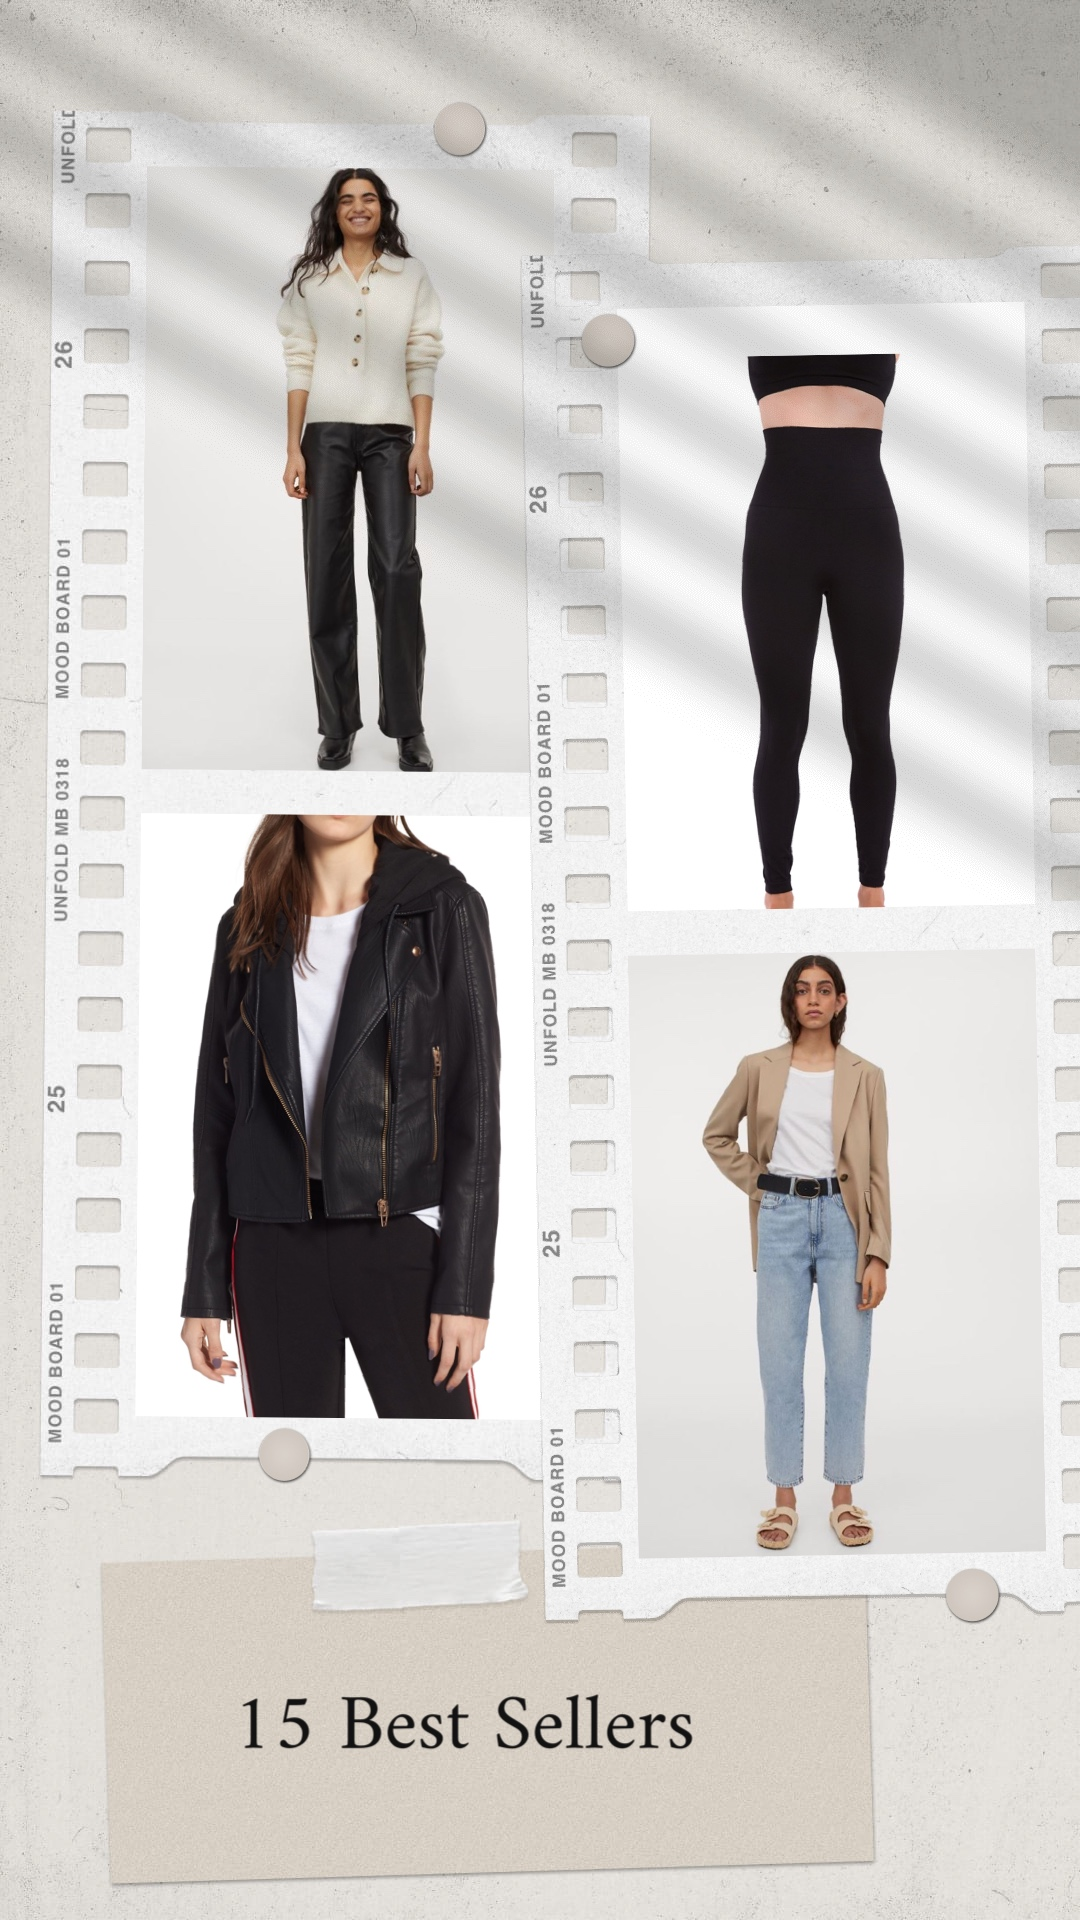 Best selling from Nordstrom and H&M